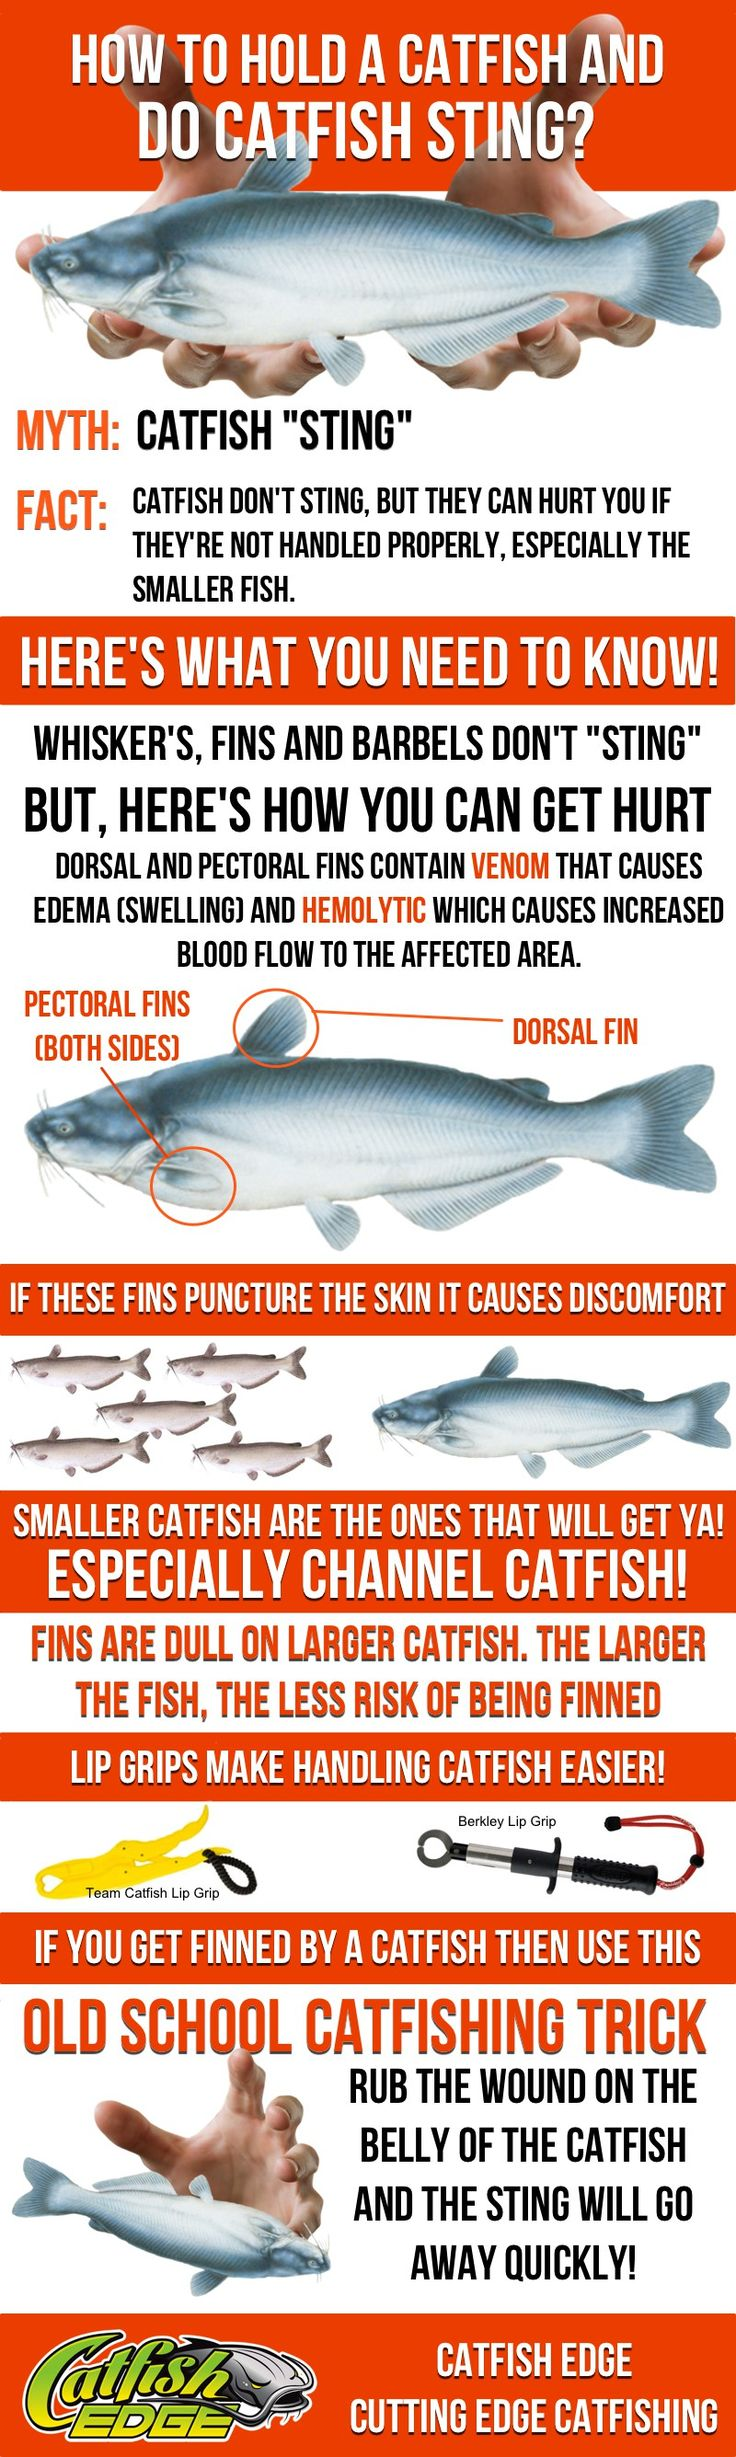 How To Hold a Catfish (and Do Catfish Sting)? Plus learn this simple trick to make the pain stop immediately.